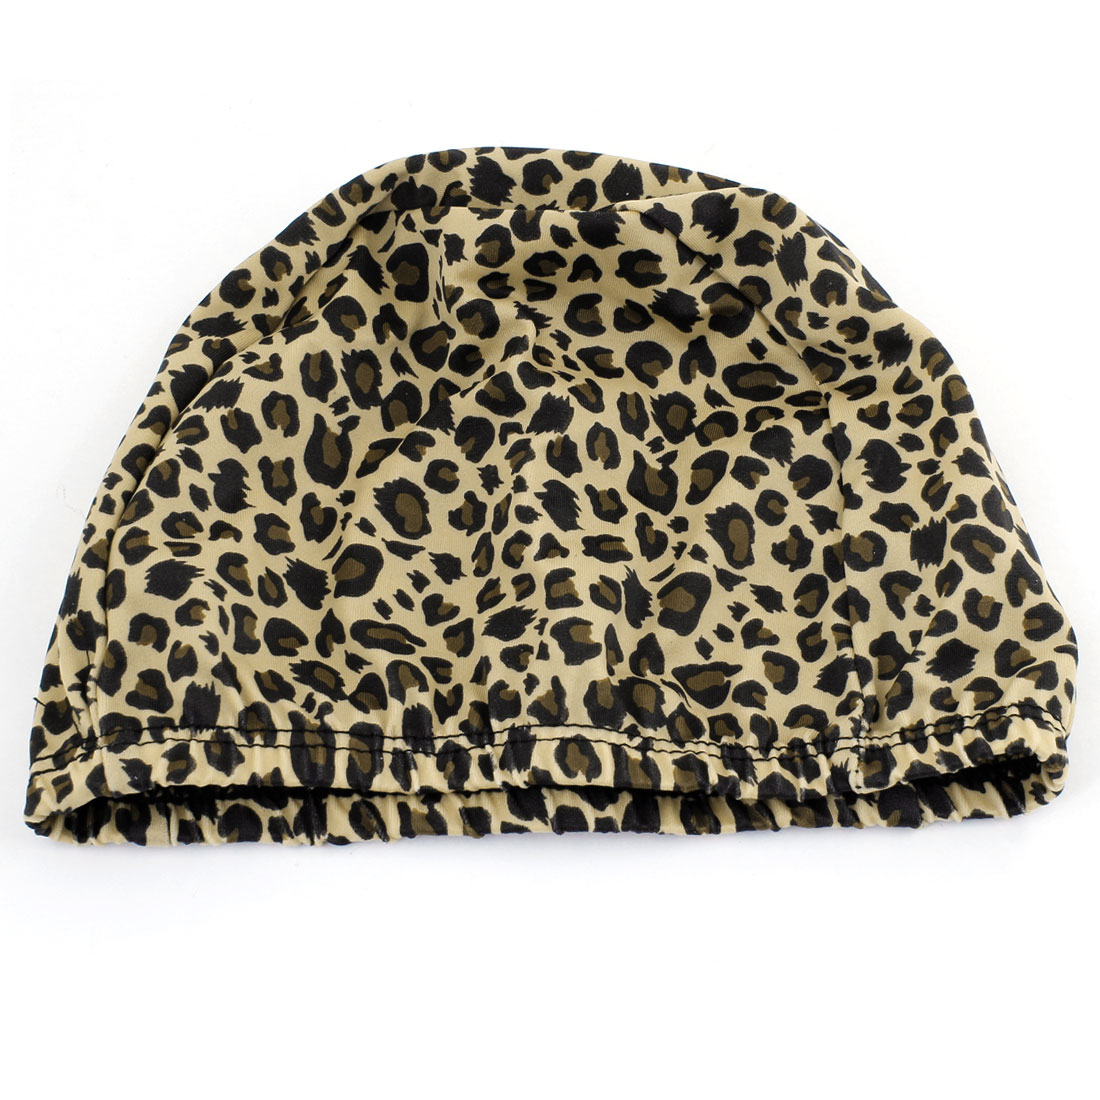 Ladies Men Leopard Prints Black Khaki Elastic Dome Shaped Swimming Hat Cap